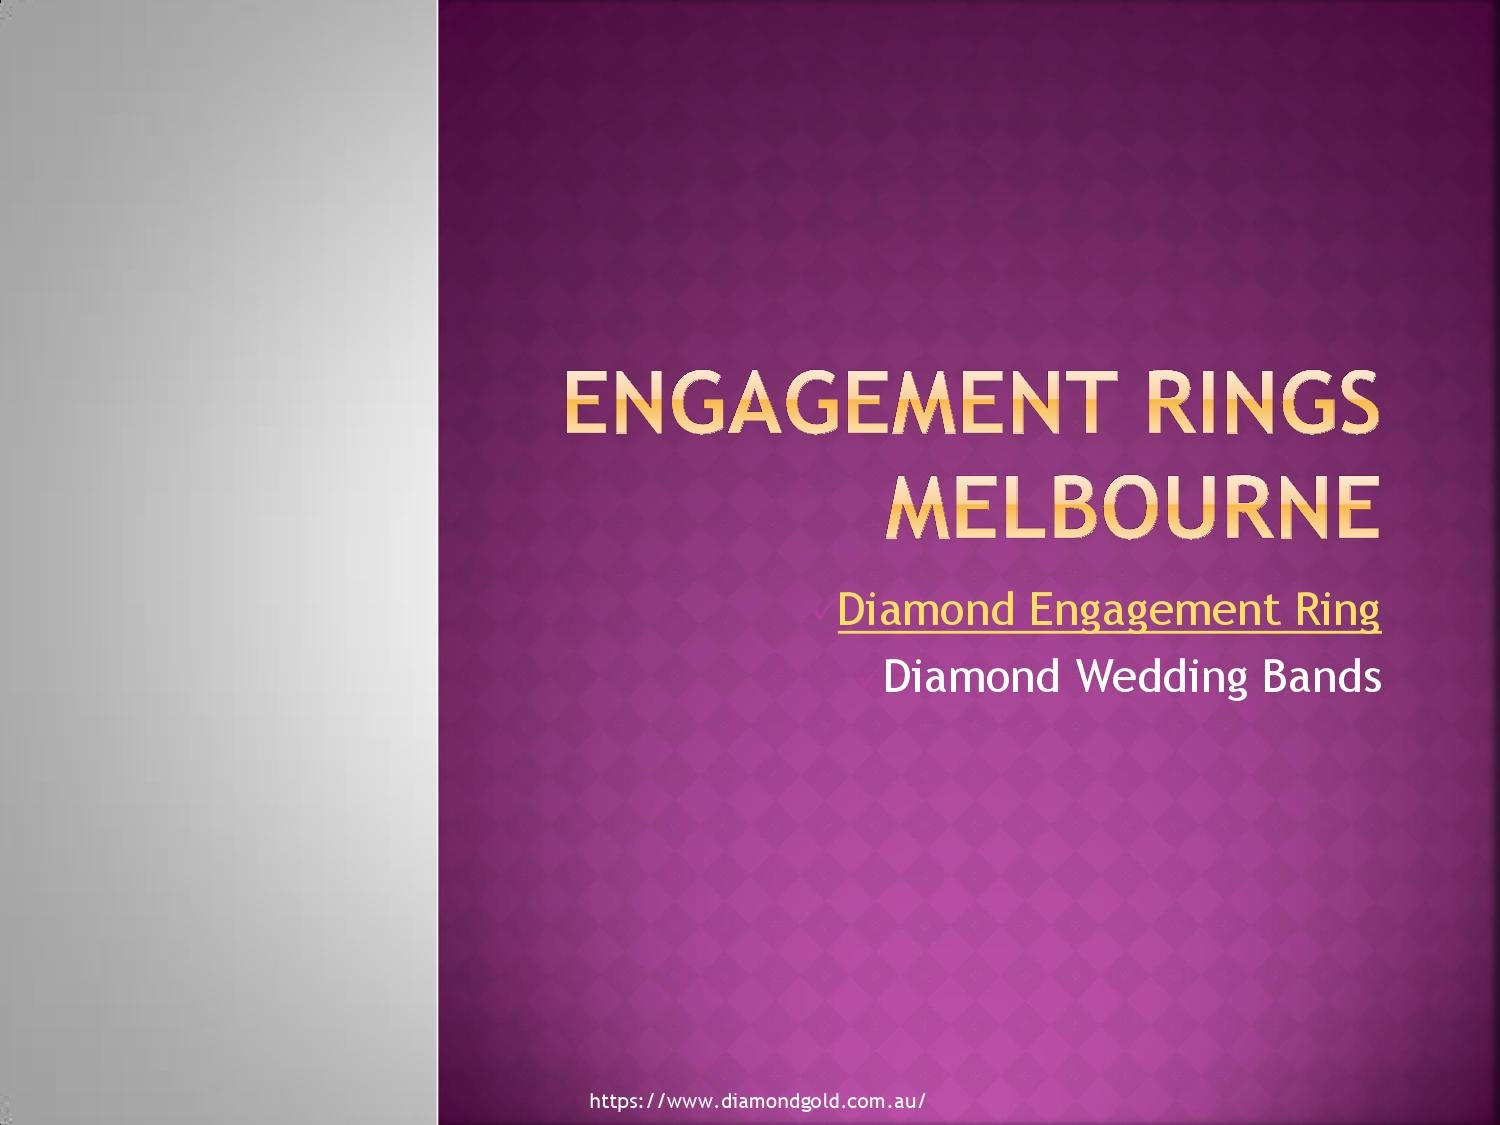 Engagement rings melbourne by Diamondringsmelbourn - issuu